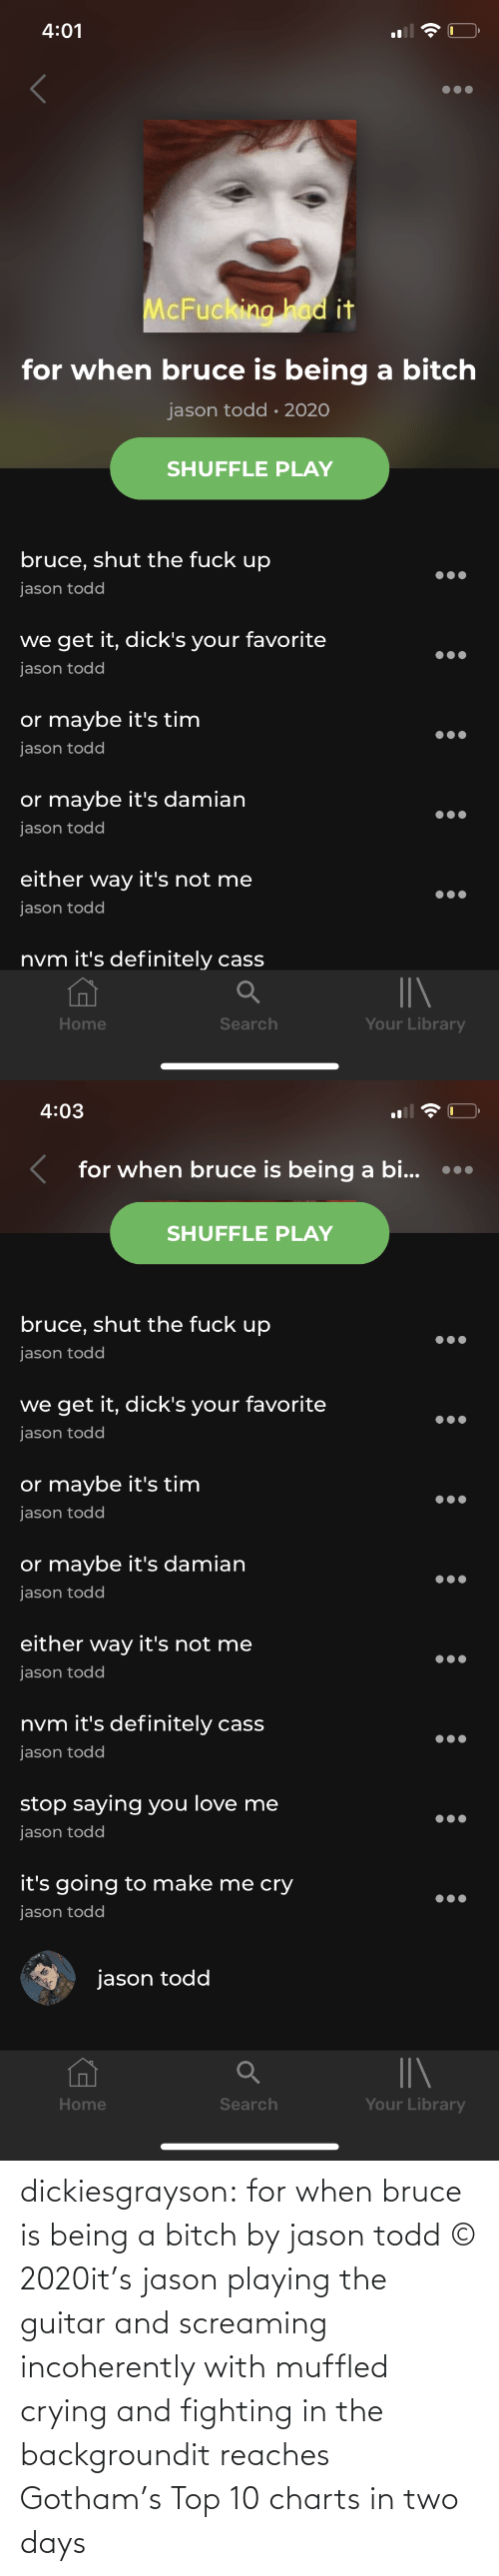 Being A: dickiesgrayson:  for when bruce is being a bitch by jason todd © 2020it's jason playing the guitar and screaming incoherently with muffled crying and fighting in the backgroundit reaches Gotham's Top 10 charts in two days